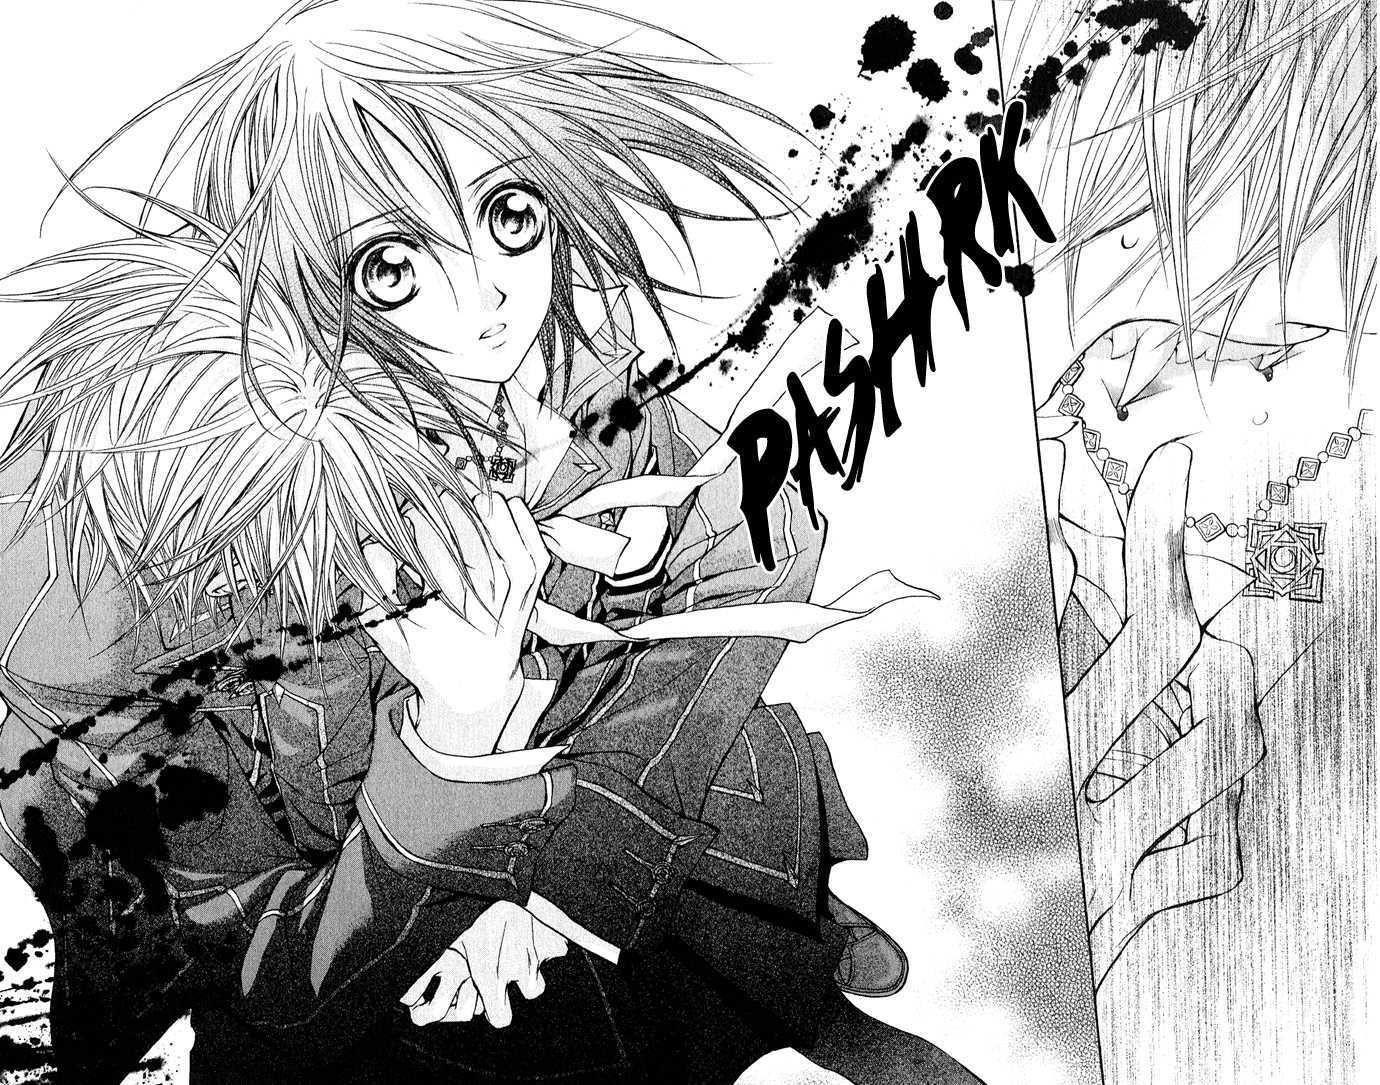 Vampire Knight 3 v1 - Read Vampire Knight Vol.1 Ch.3 Online For Free - Page 24 - Page size 1 - MangaPark